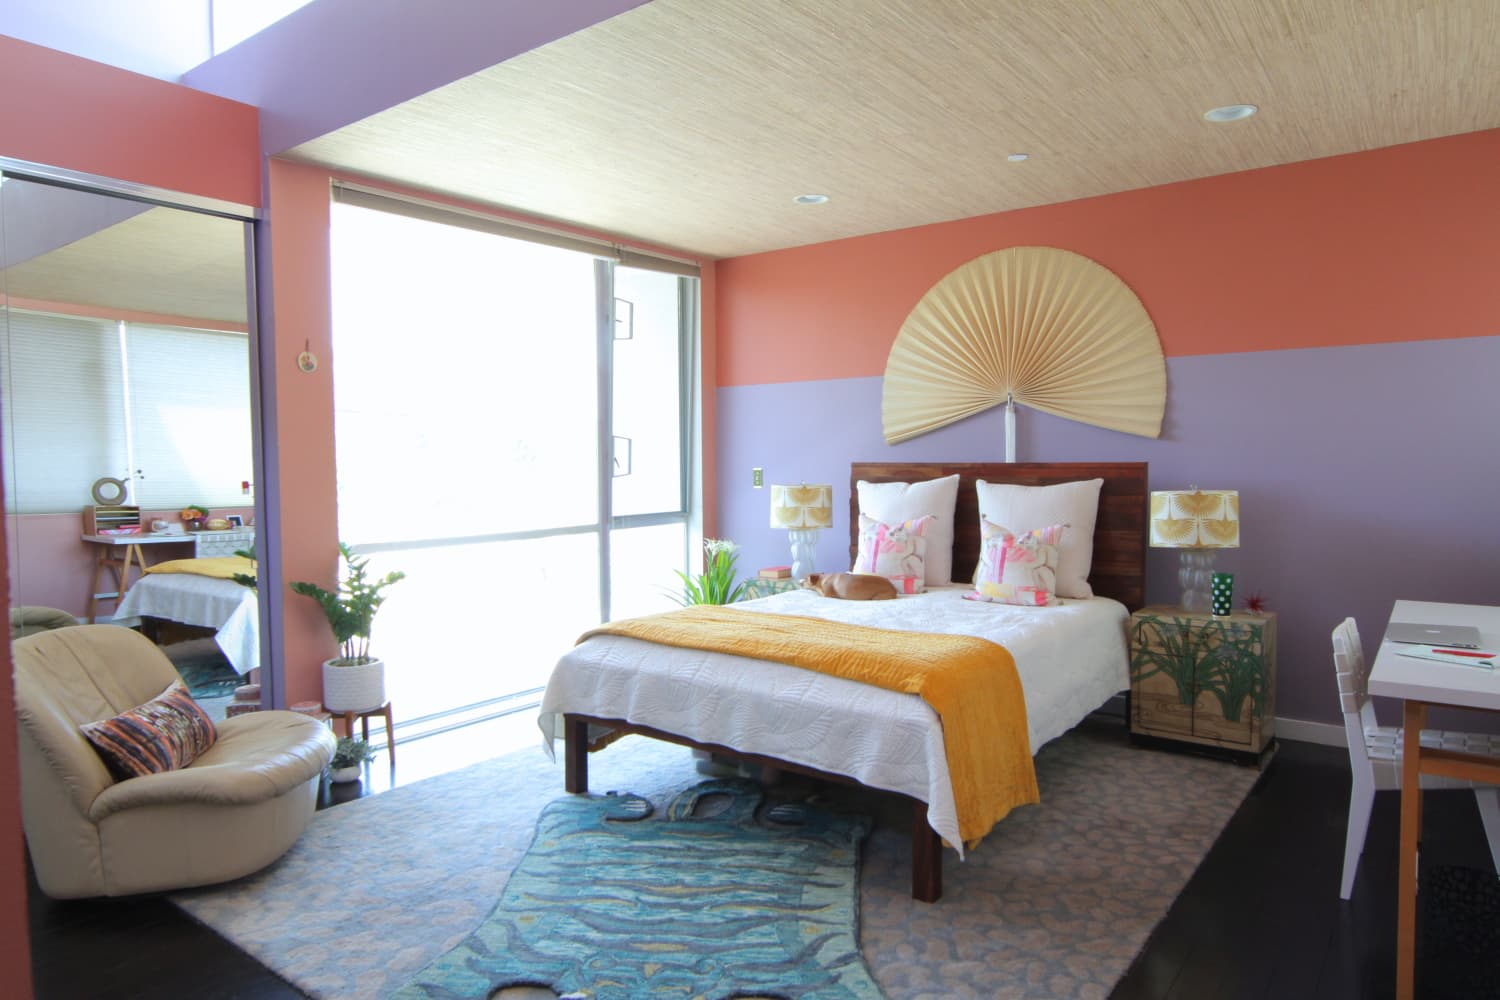 This Colorful Bedroom Has the Most Stylish Solution for Mirrored Closet Doors